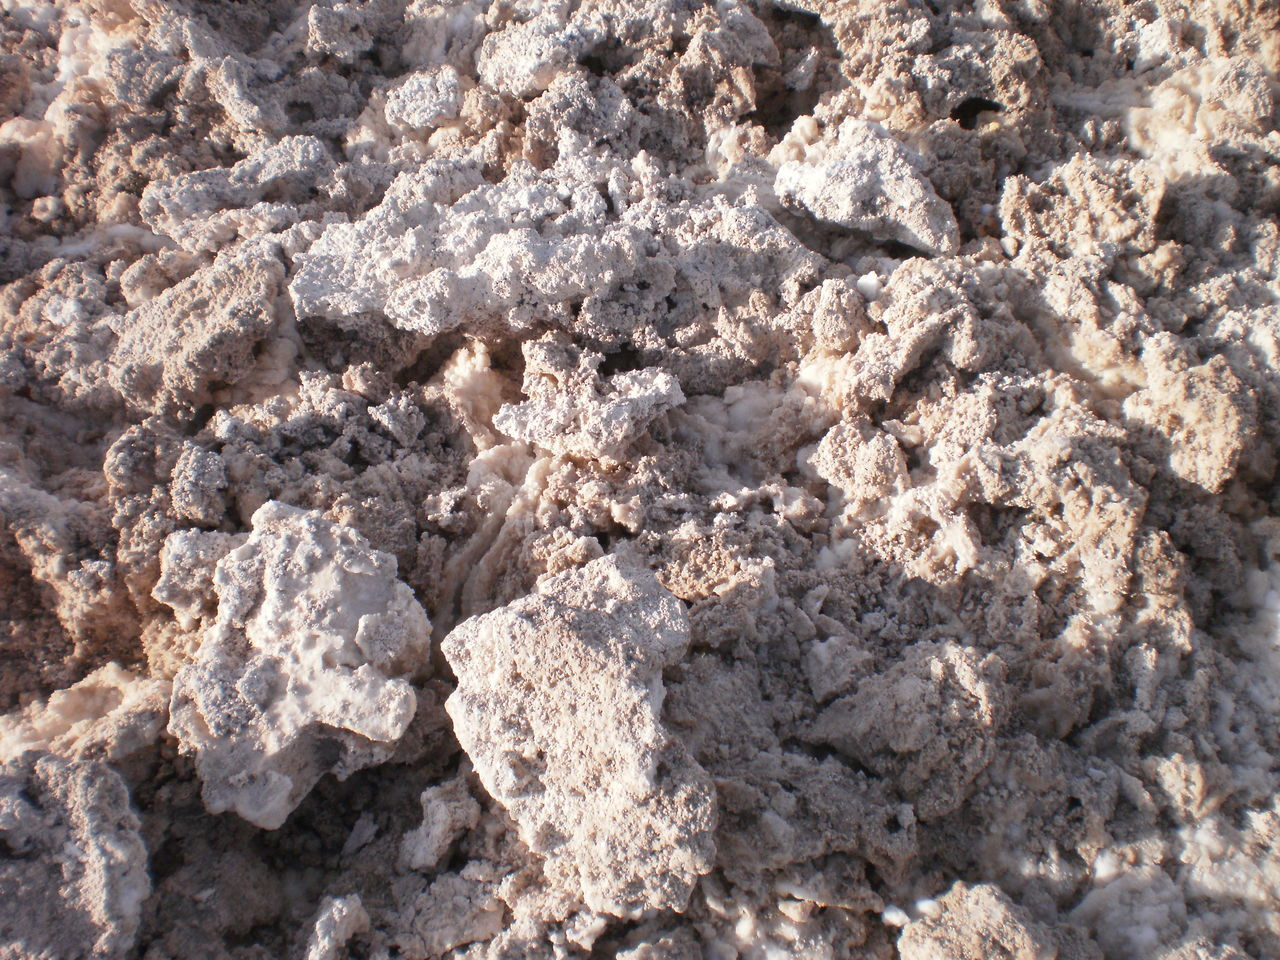 rock - object, nature, backgrounds, no people, full frame, textured, quartz, close-up, salt - mineral, day, outdoors